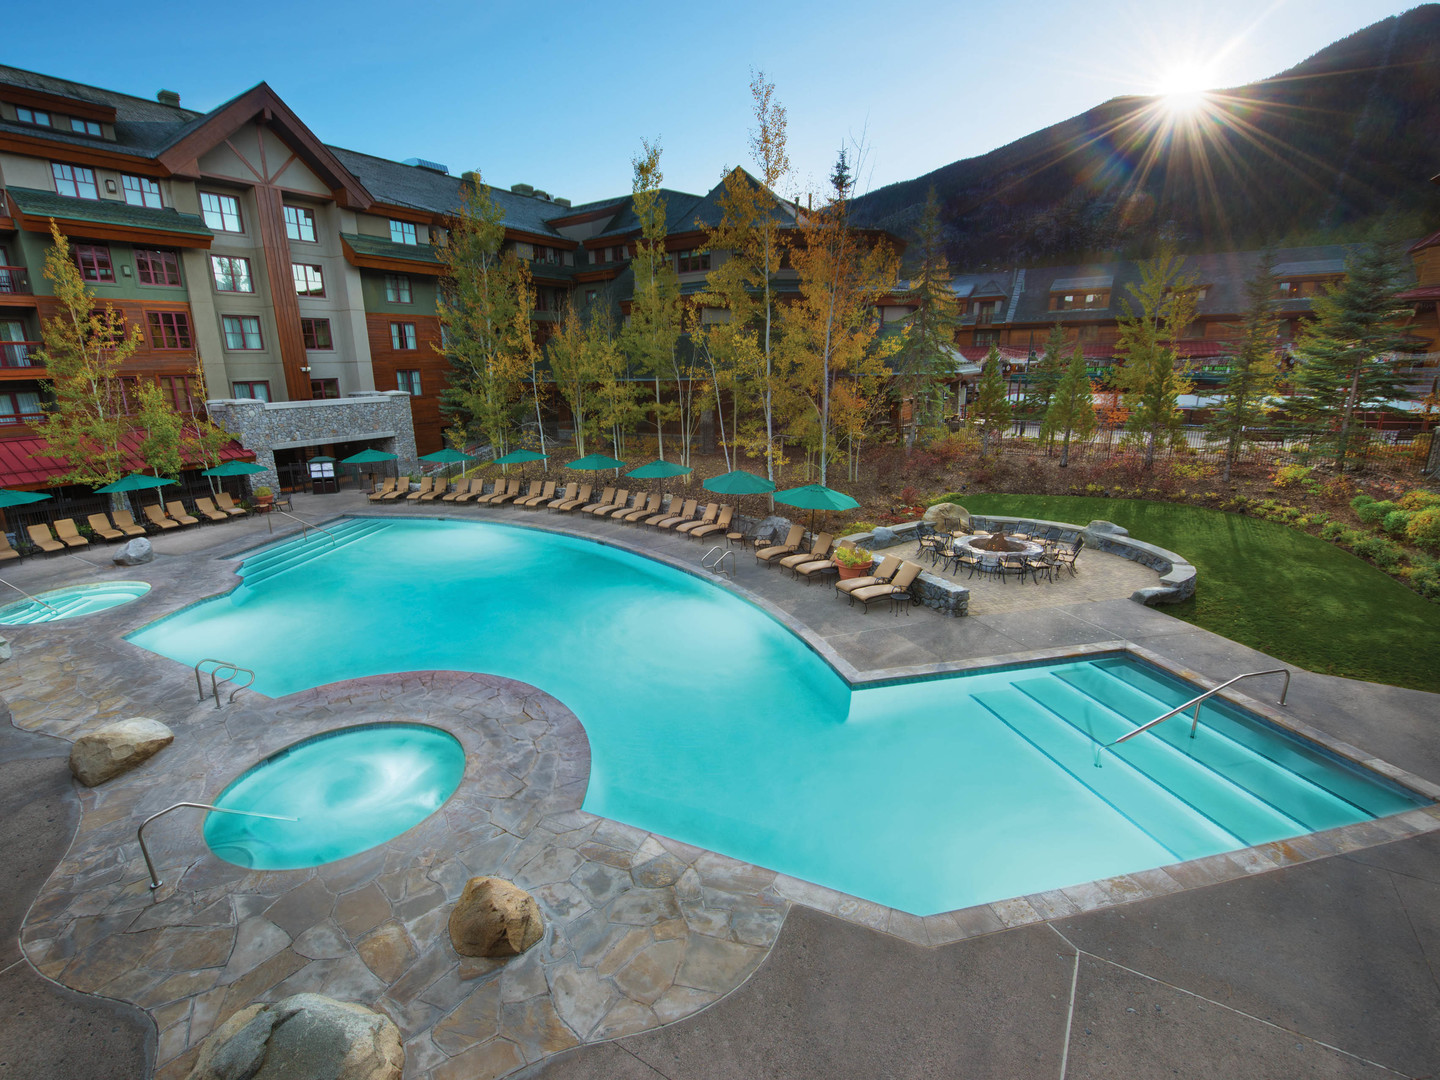 Marriott's Grand Residence Club<span class='trademark'>®</span> 1, Lake Tahoe Main Pool. Marriott's Grand Residence Club<span class='trademark'>®</span> 1, Lake Tahoe is located in South Lake Tahoe, California United States.